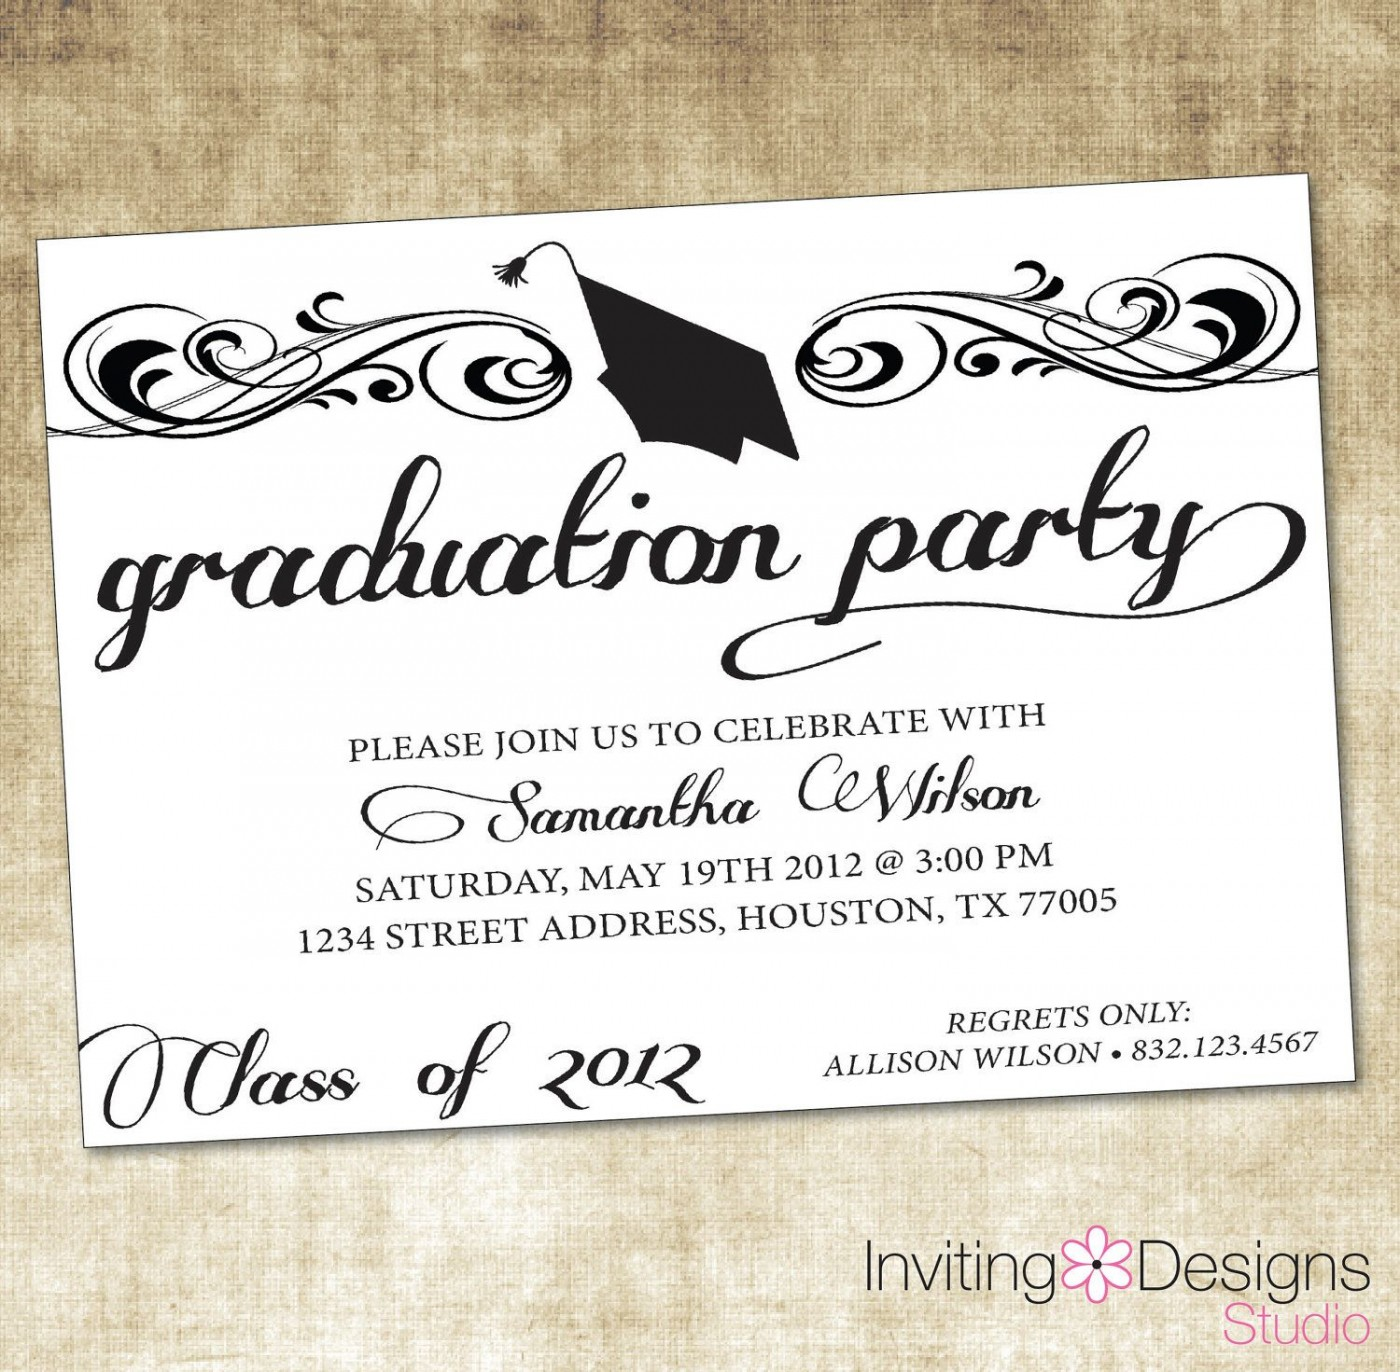 000 Marvelou College Graduation Invitation Template Highest Quality  Party Free For Word1400